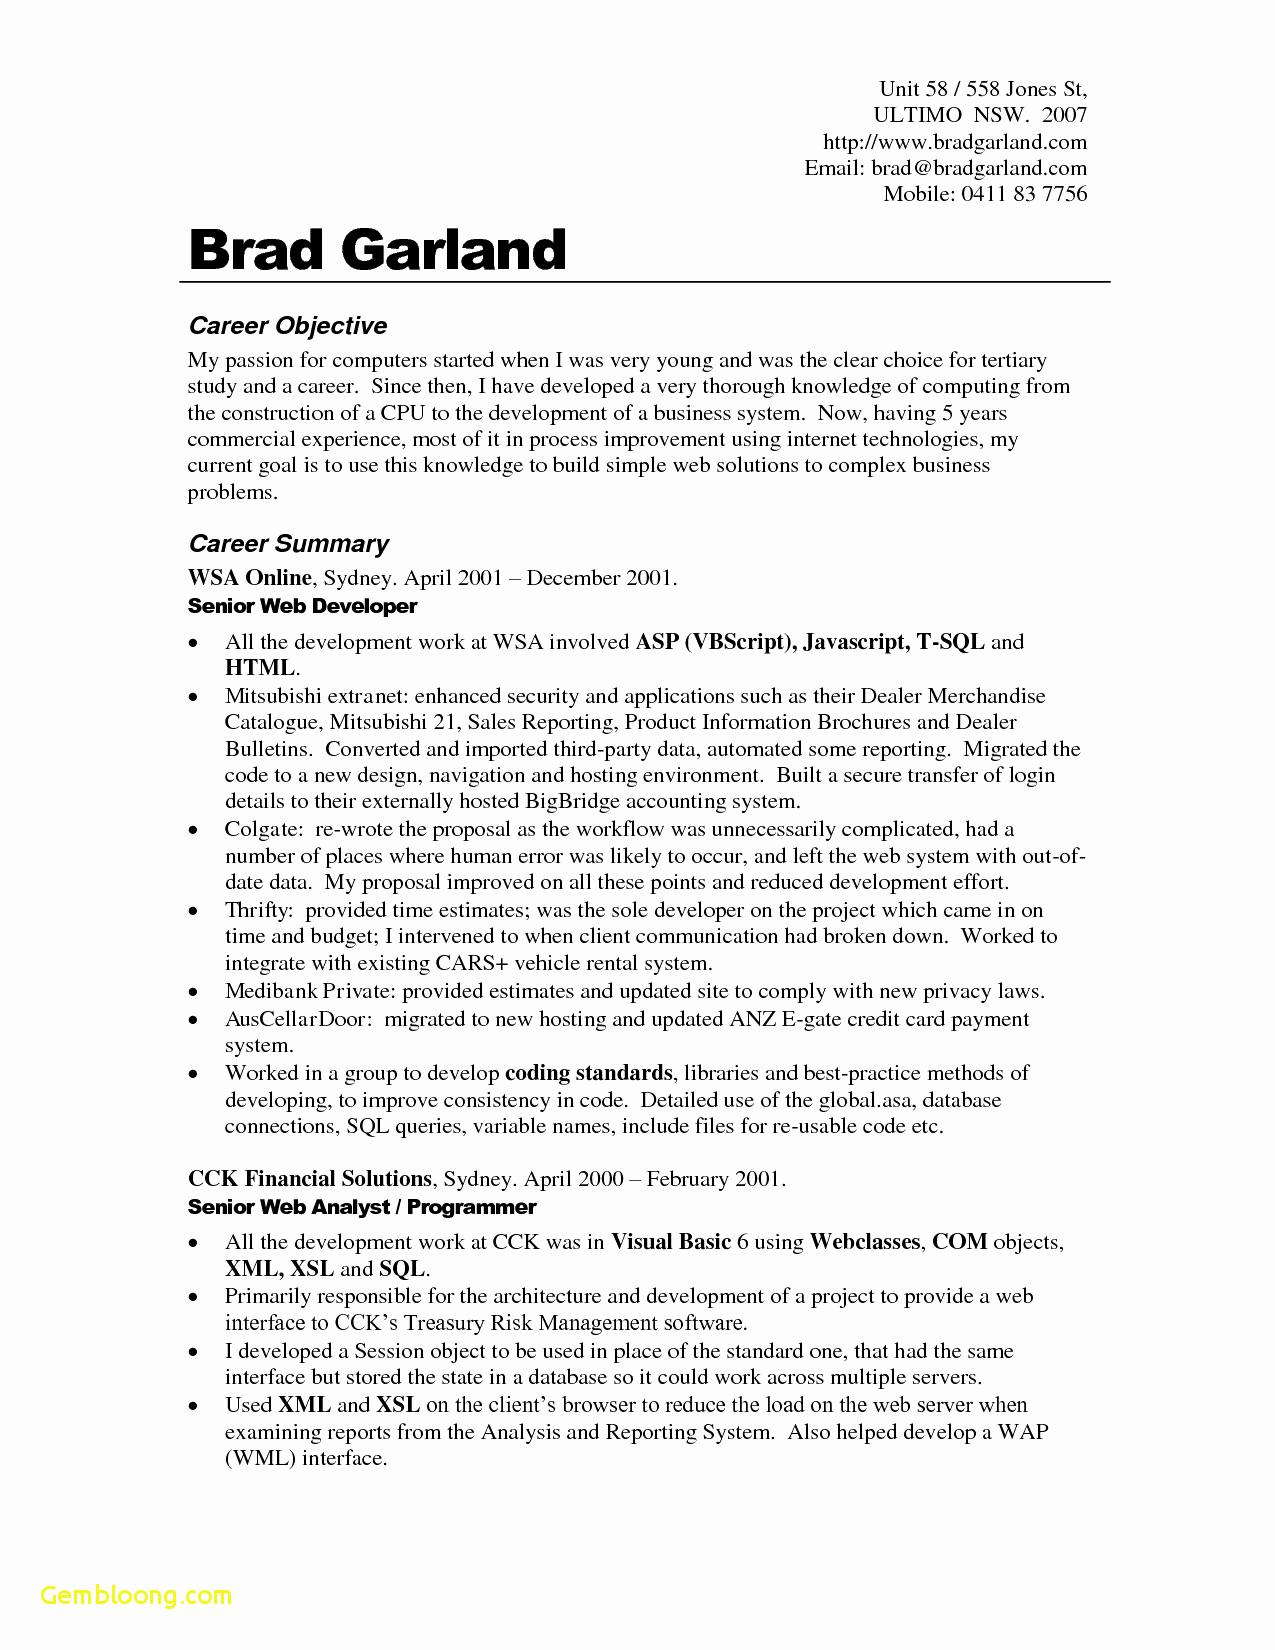 Reverse Chronological order Resume - Chronological Resume format Download Fresh Resume Examples Download